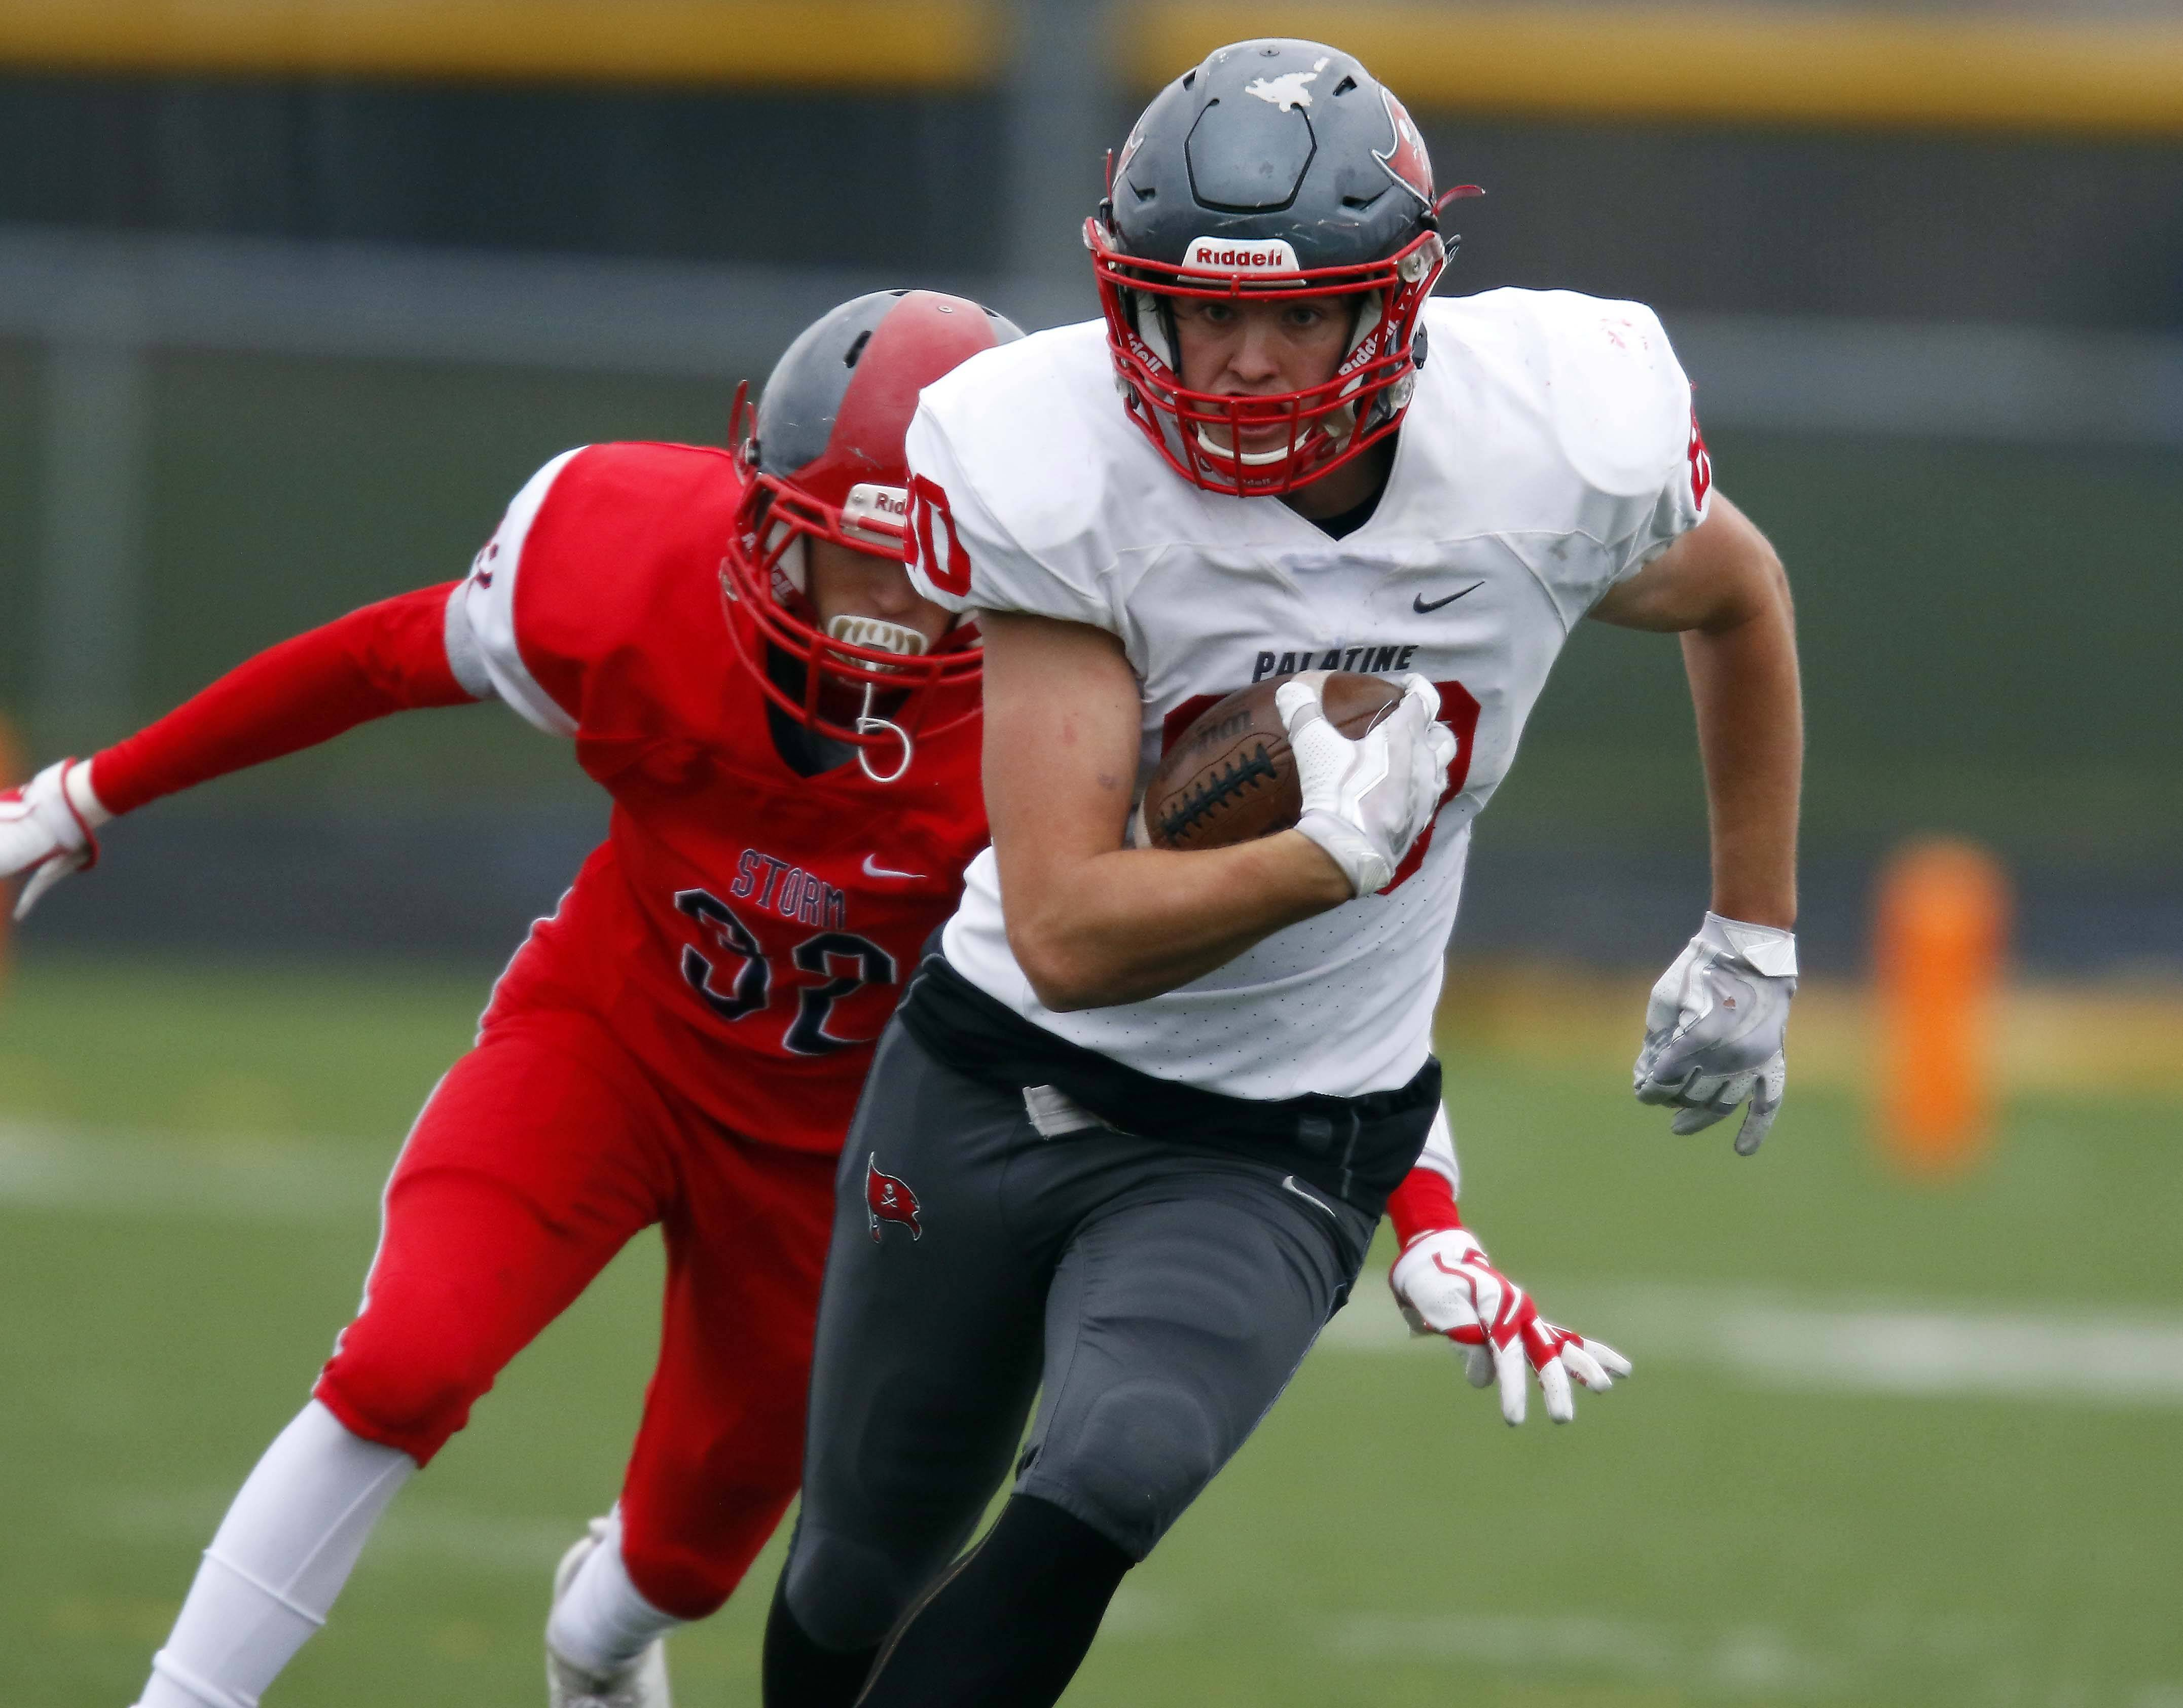 Palatine's Johnny O'Shea (80) moves upfield Saturday against South Elgin during the Pirates' 24-3 Class 8A football playoff wins at Millennium Field in Streamwood.